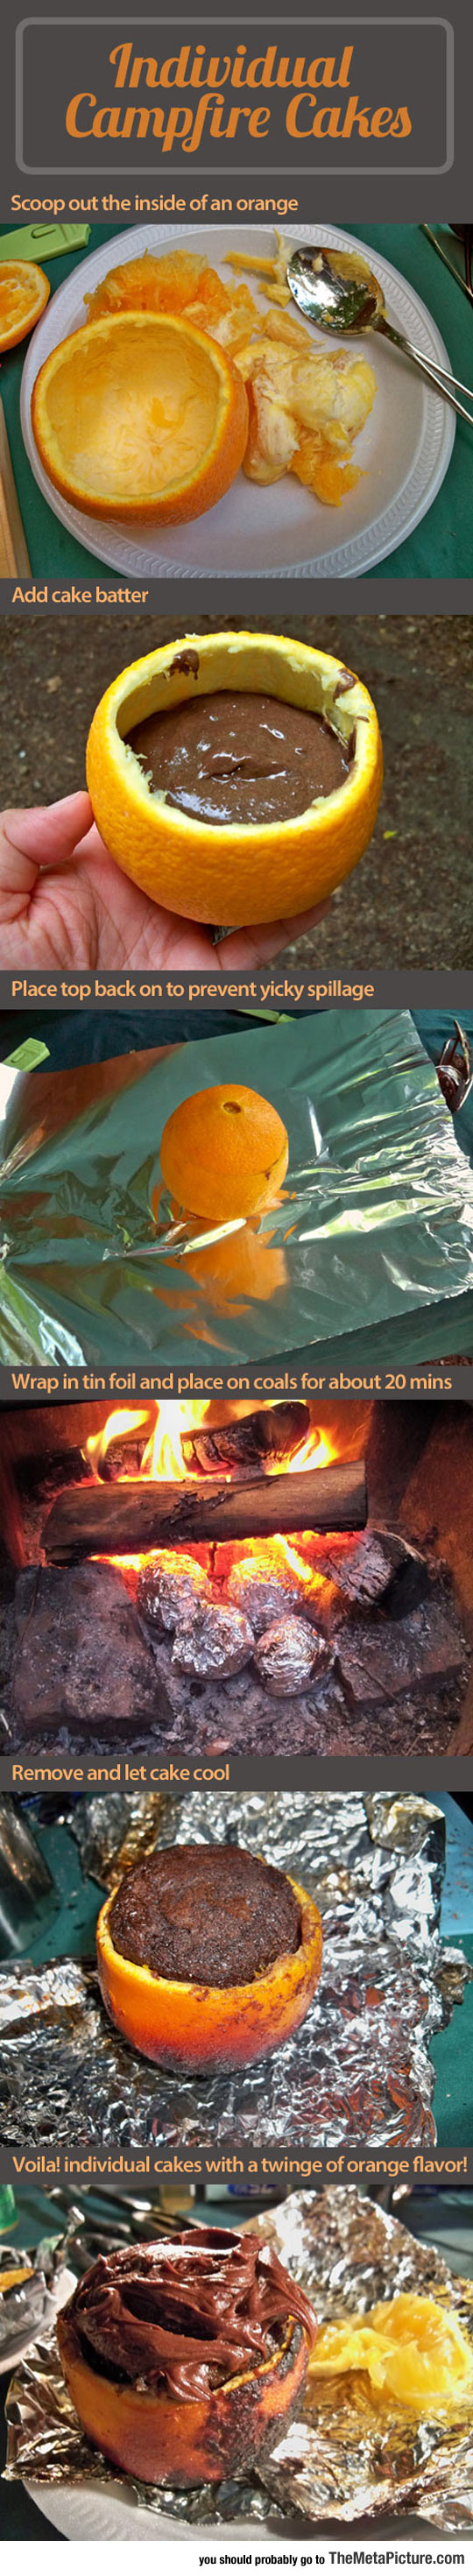 food-campfire-cakes-oranges-chocolate-fire